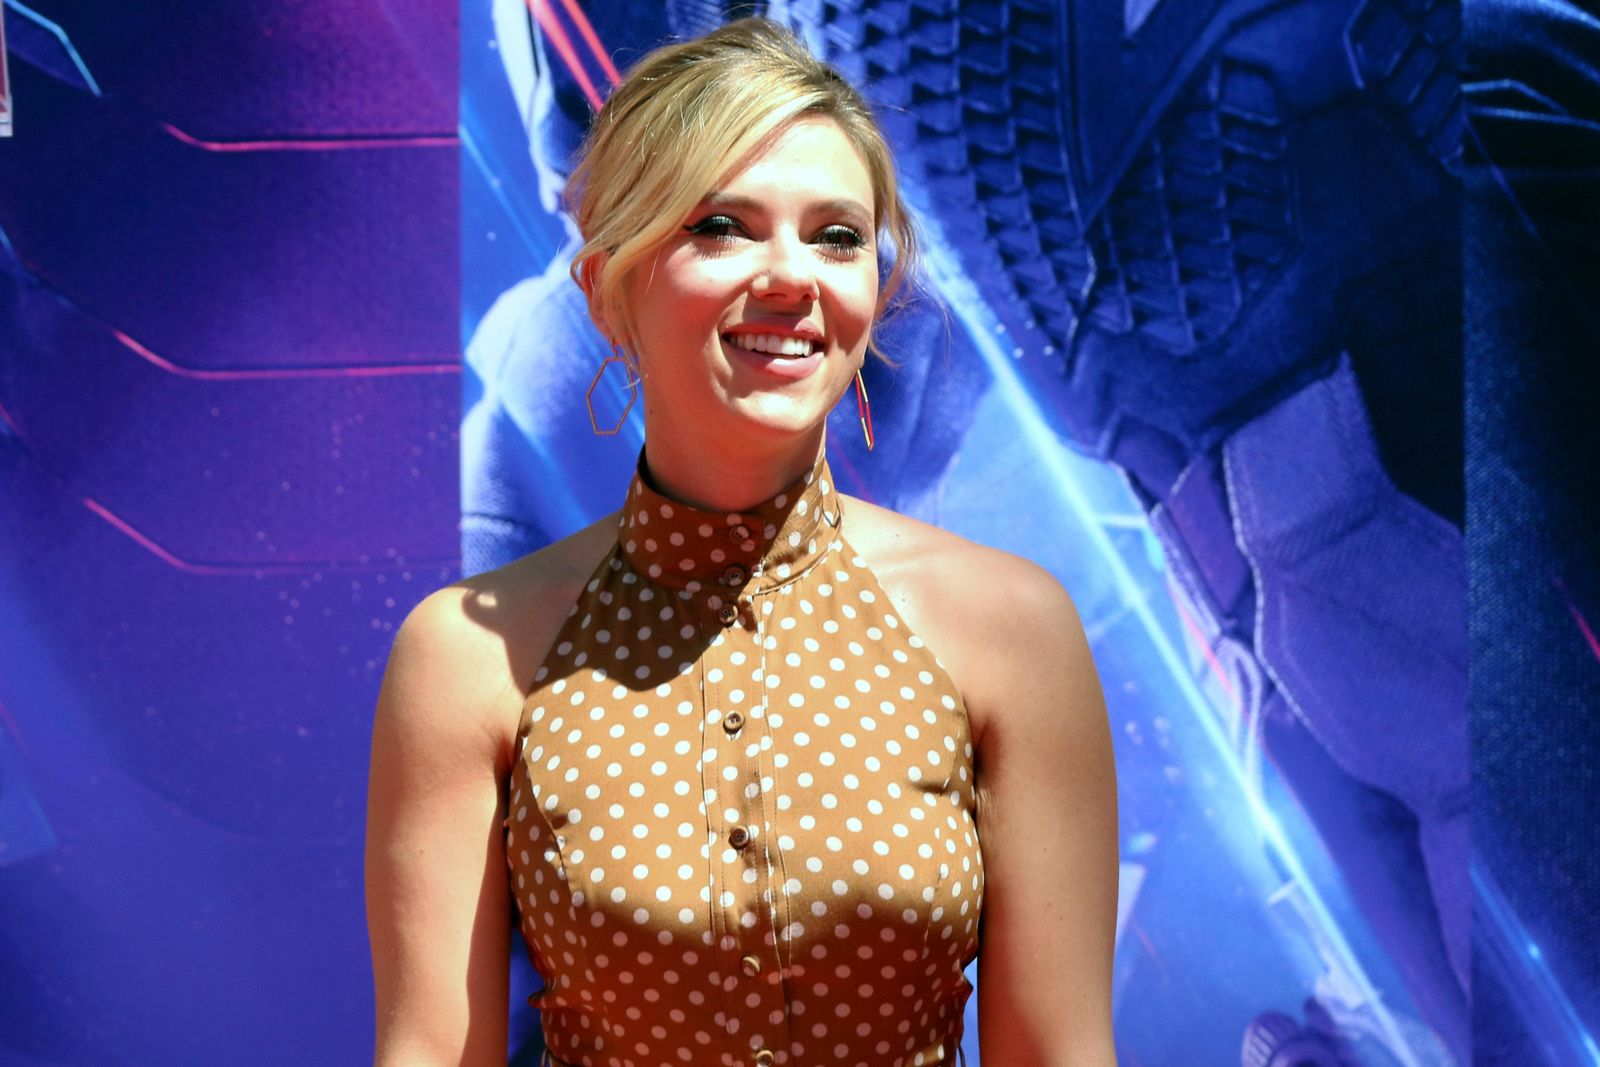 "FILE - In a Tuesday, April 23, 2019 file photo, Scarlett Johansson, a member of the cast of ""Avengers: End Game,"" appears at a hand and footprint ceremony at the TCL Chinese Theatre, in Los Angeles. Scarlett Johansson says comments she made on the ""authentic casting"" debate have been taken out of context and asserts that she supports diversity in film. In a recent interview with As If magazine, she said actors should be allowed to play any person ""because that is my job and the requirement of my job."" Johansson said Saturday, July 13, 2019 that those comments were subsequently edited in other publications for clickbait.  (Photo by Willy Sanjuan/Invision/AP, File)"